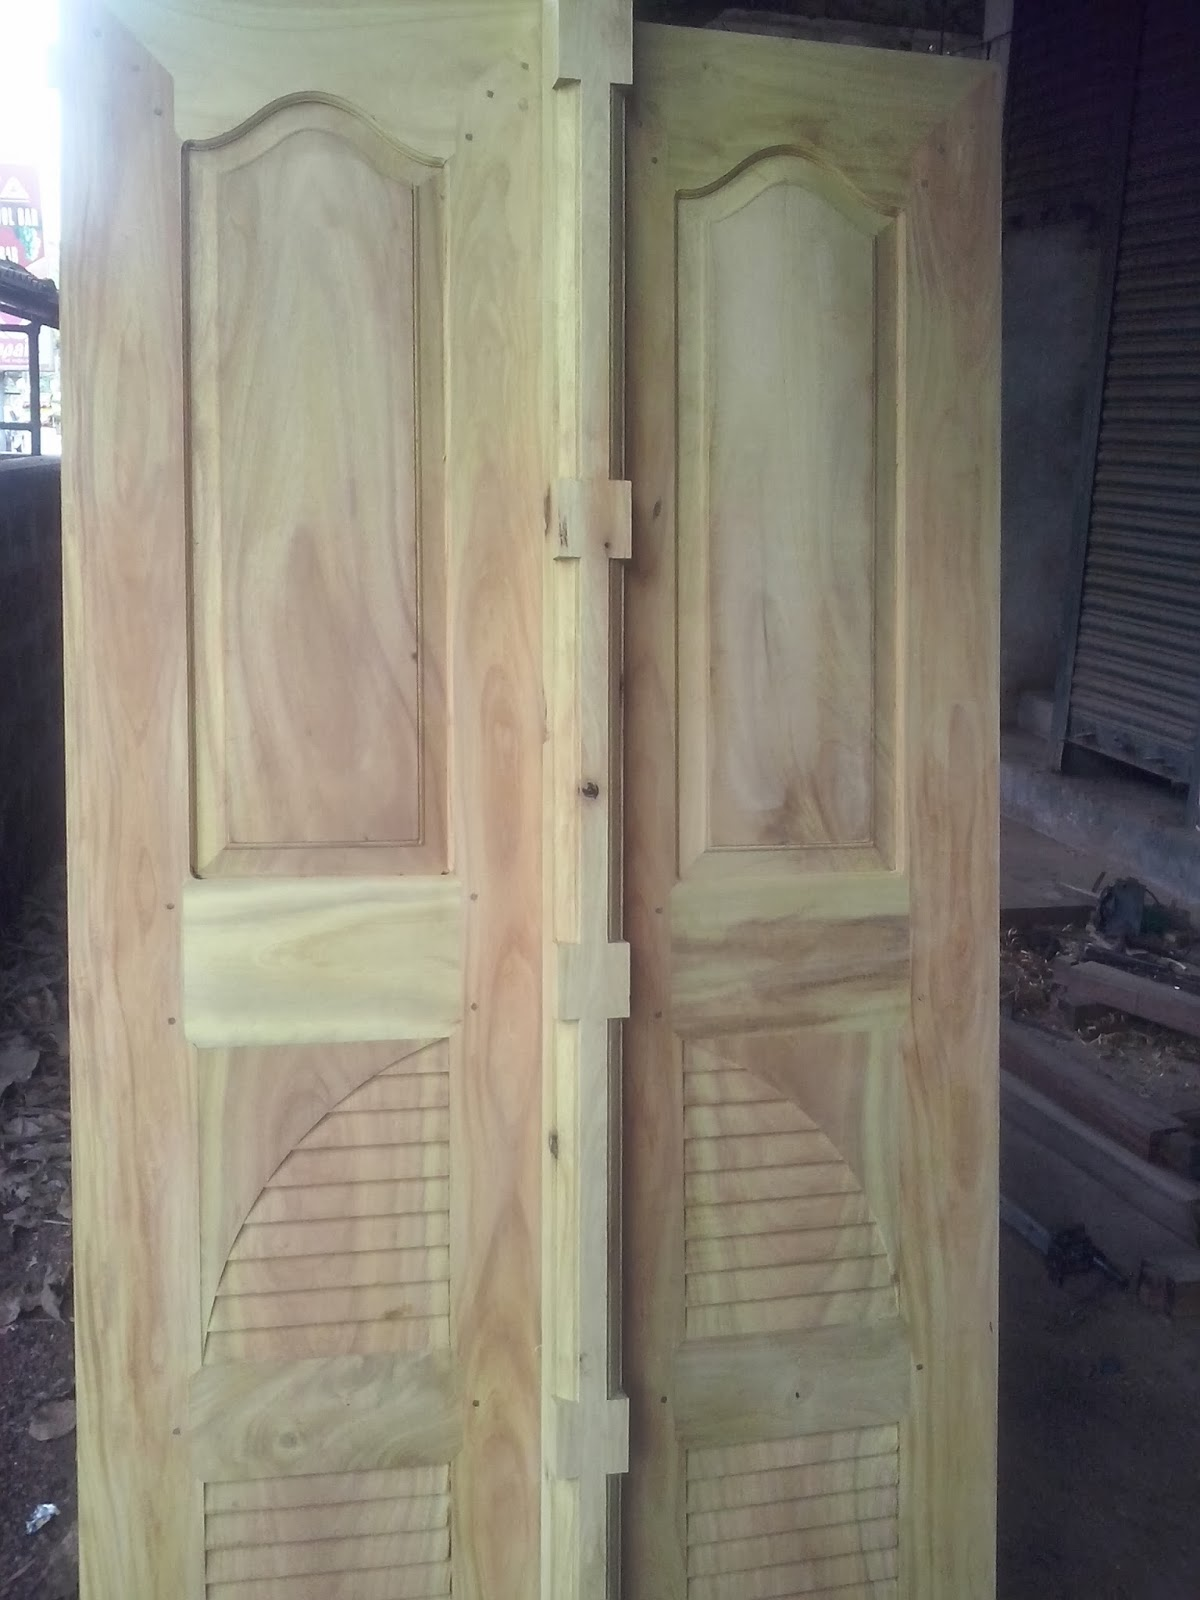 Bavas wood works main entrance wooden double door designs for House front double door design